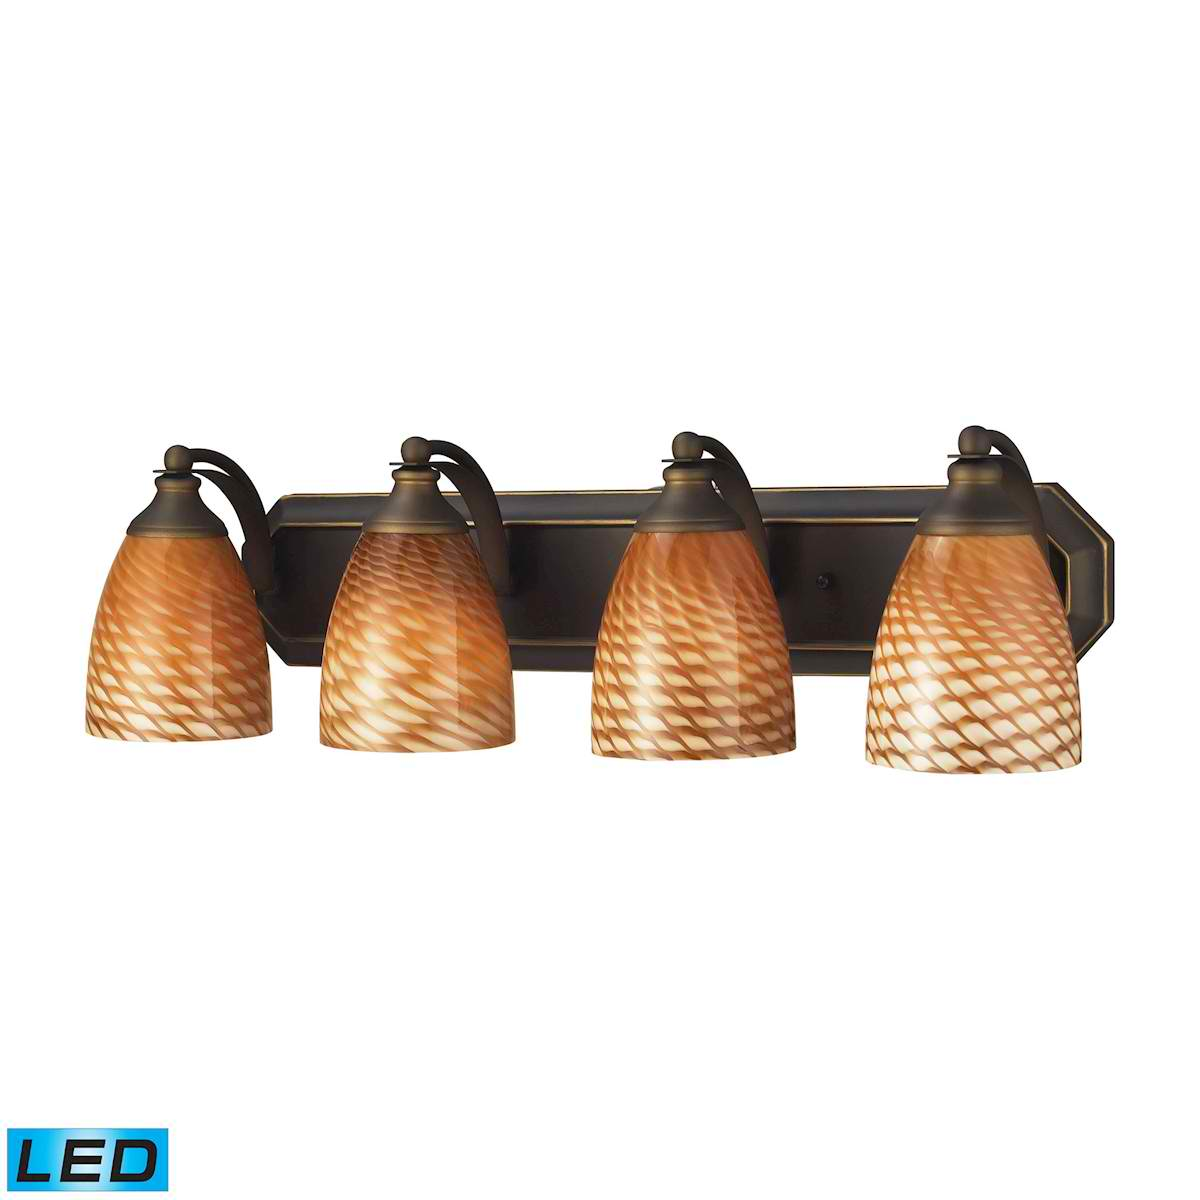 4 Light Vanity in Aged Bronze and Coco Glass - LED, 800 Lumens (3200 Lumens Total) with Full Scale D